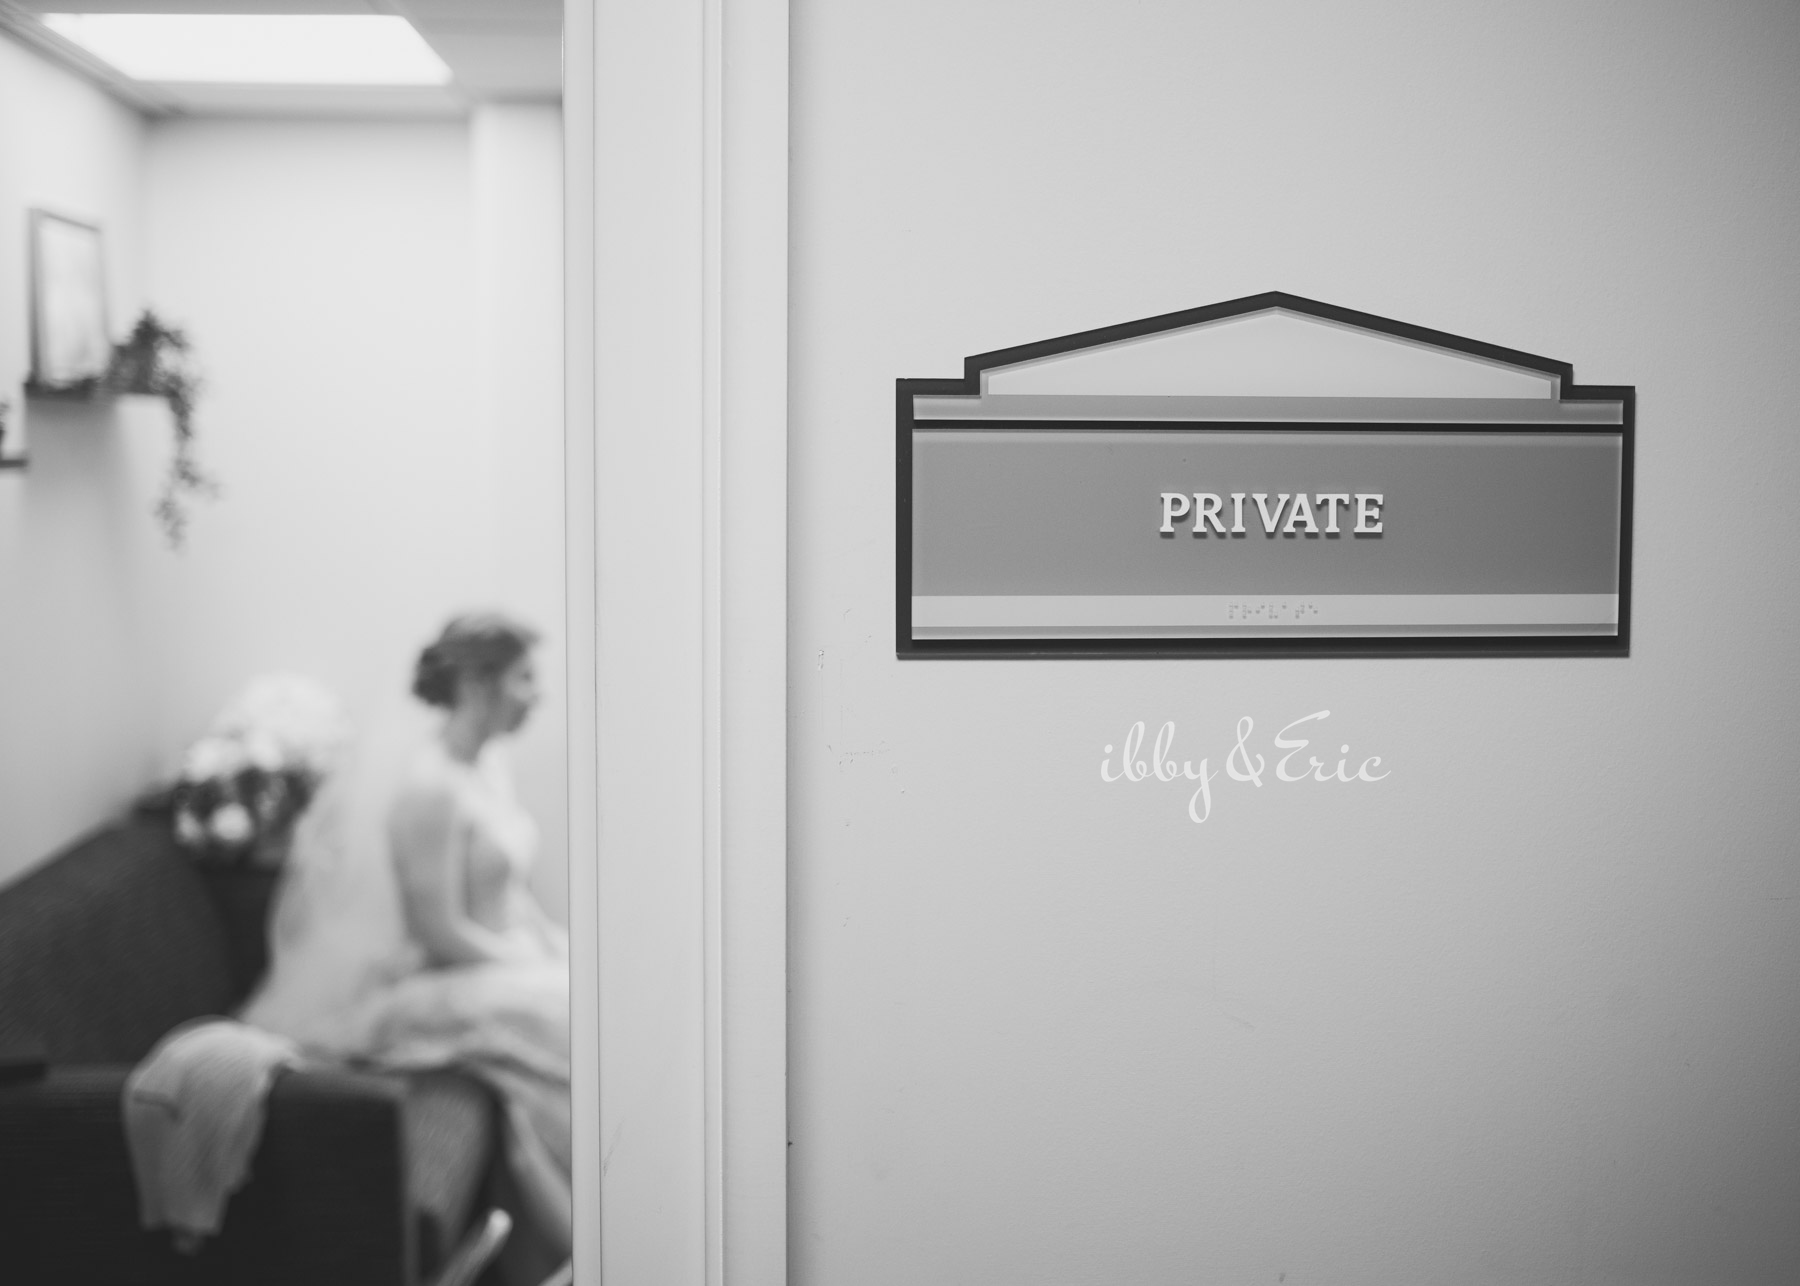 Black and white photo, focused on the PRIVATE sign on the doorway, with the bride seated in the background out of focus.